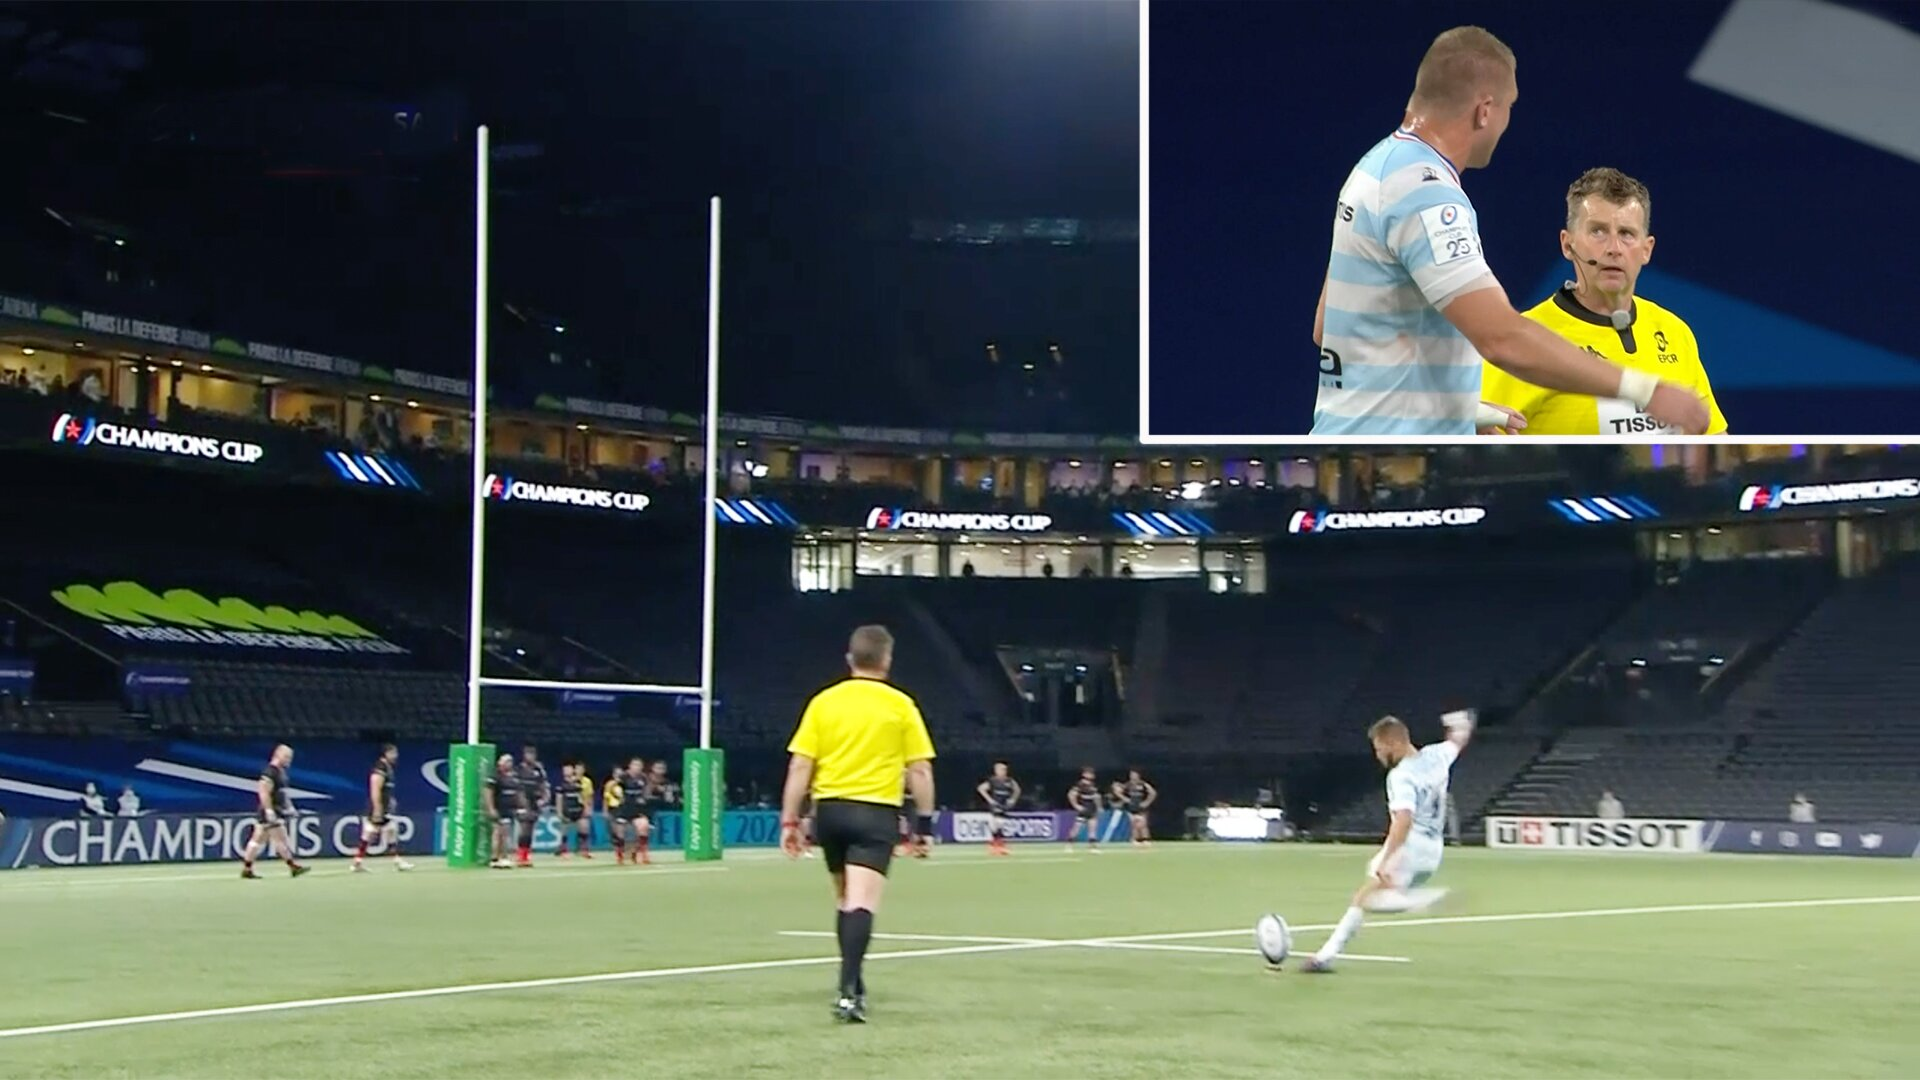 Utter confusion as Racing 92 are awarded 'ghost penalty' to take lead in Champions Cup clash